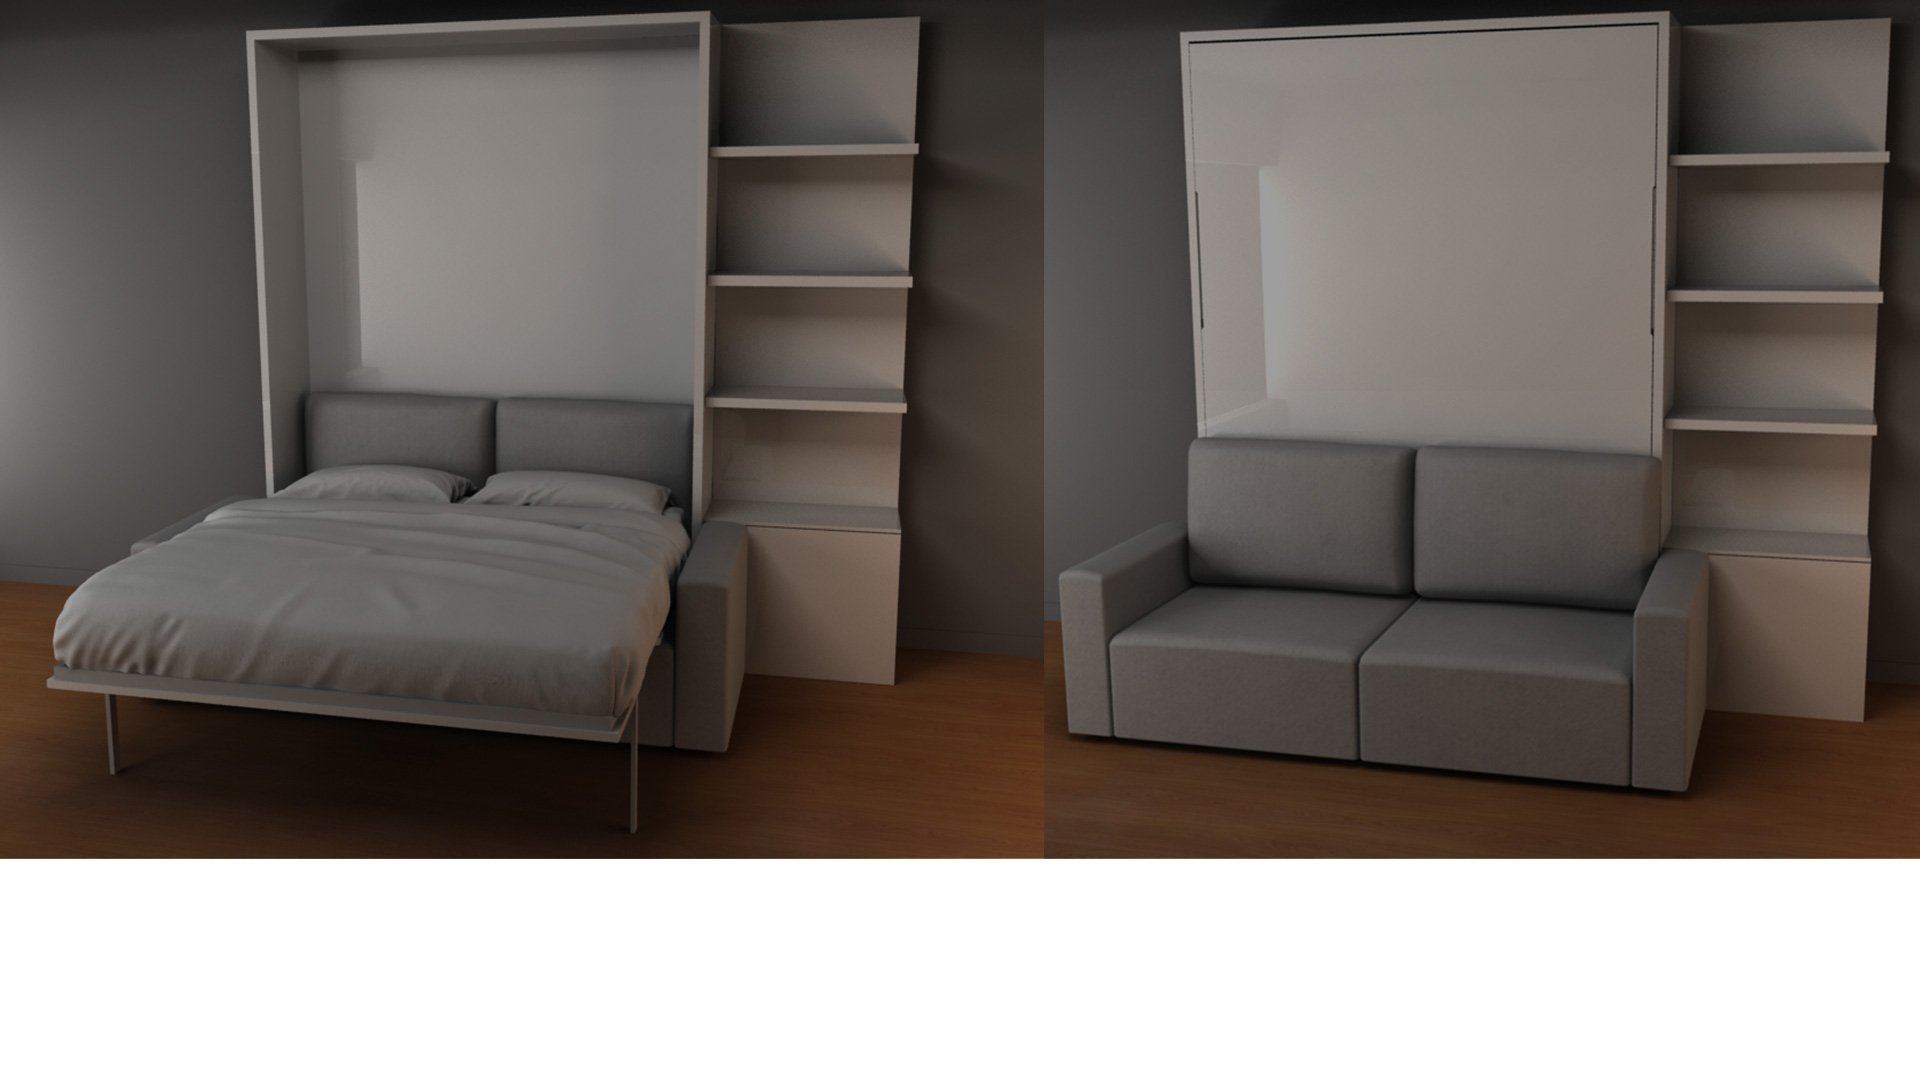 Superieur ... Saving Needs: From Vertical And Horizontal Wall Bed Sofa Designs To  Compacting Murphysofas, Sofa Wall Beds With Storage And Sectional Wallbed  Sofas.